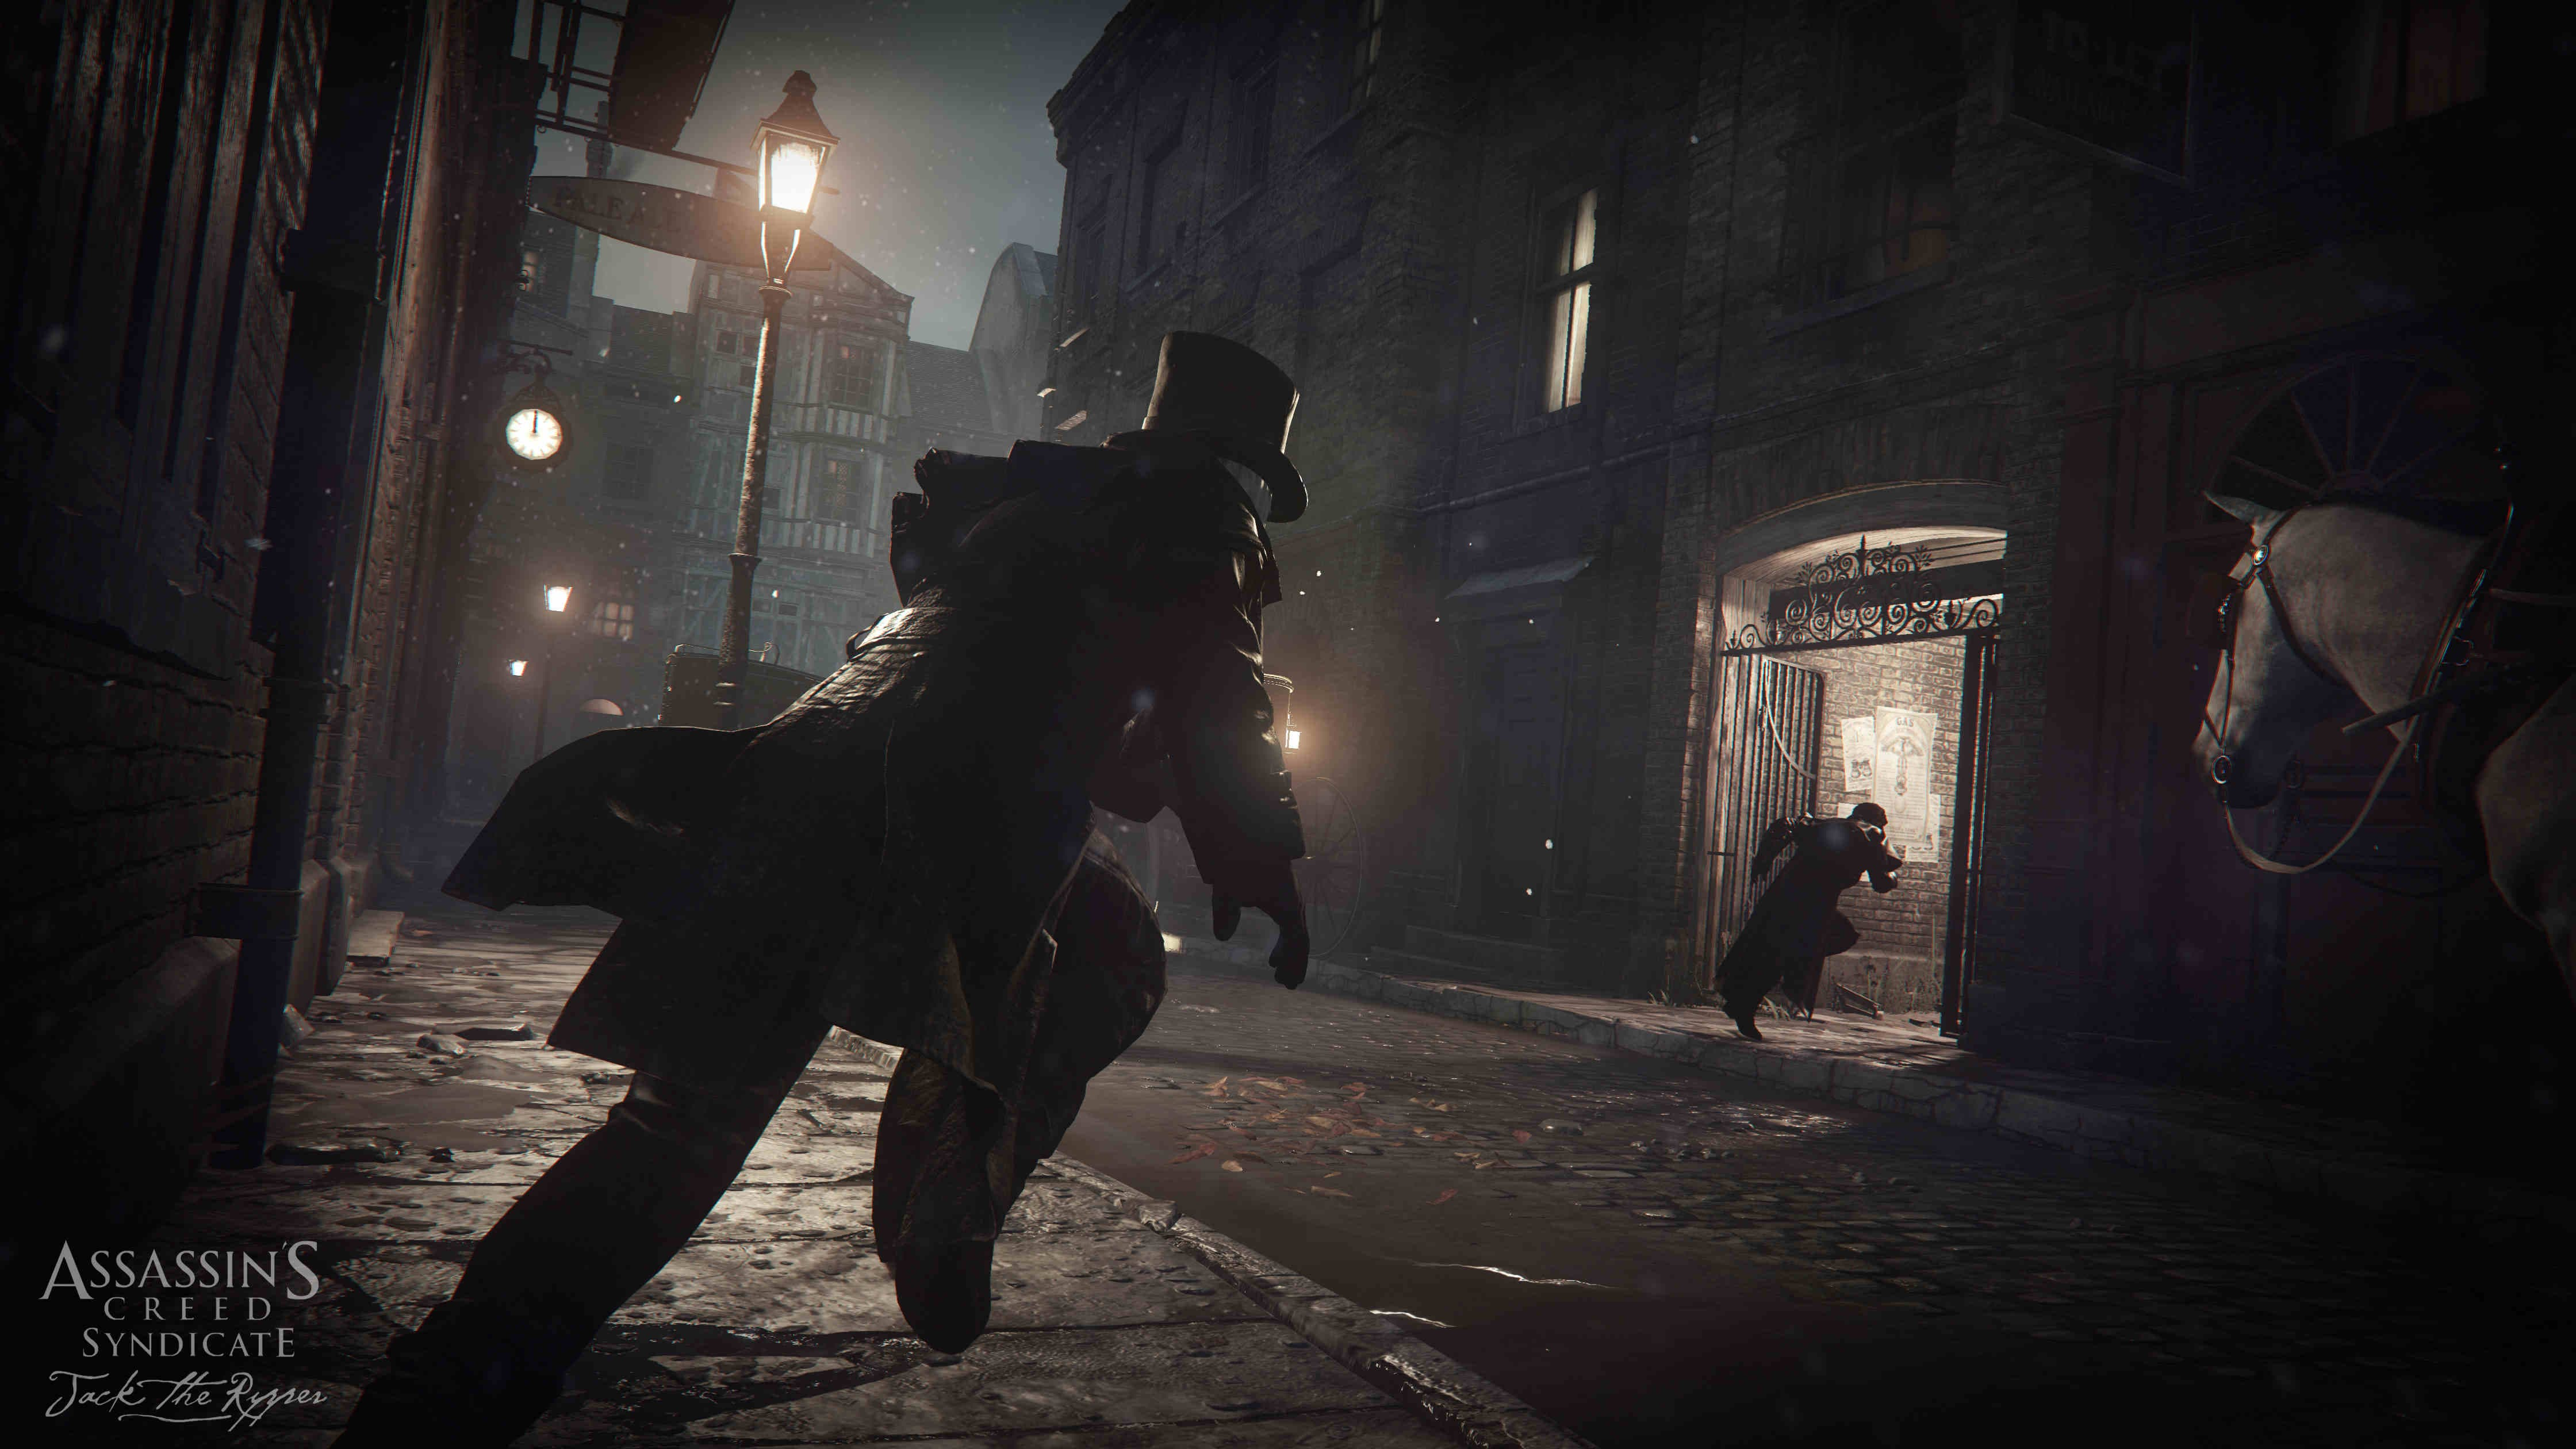 Assassin's Creed Syndicate: Jack l'Eventreur Xbox